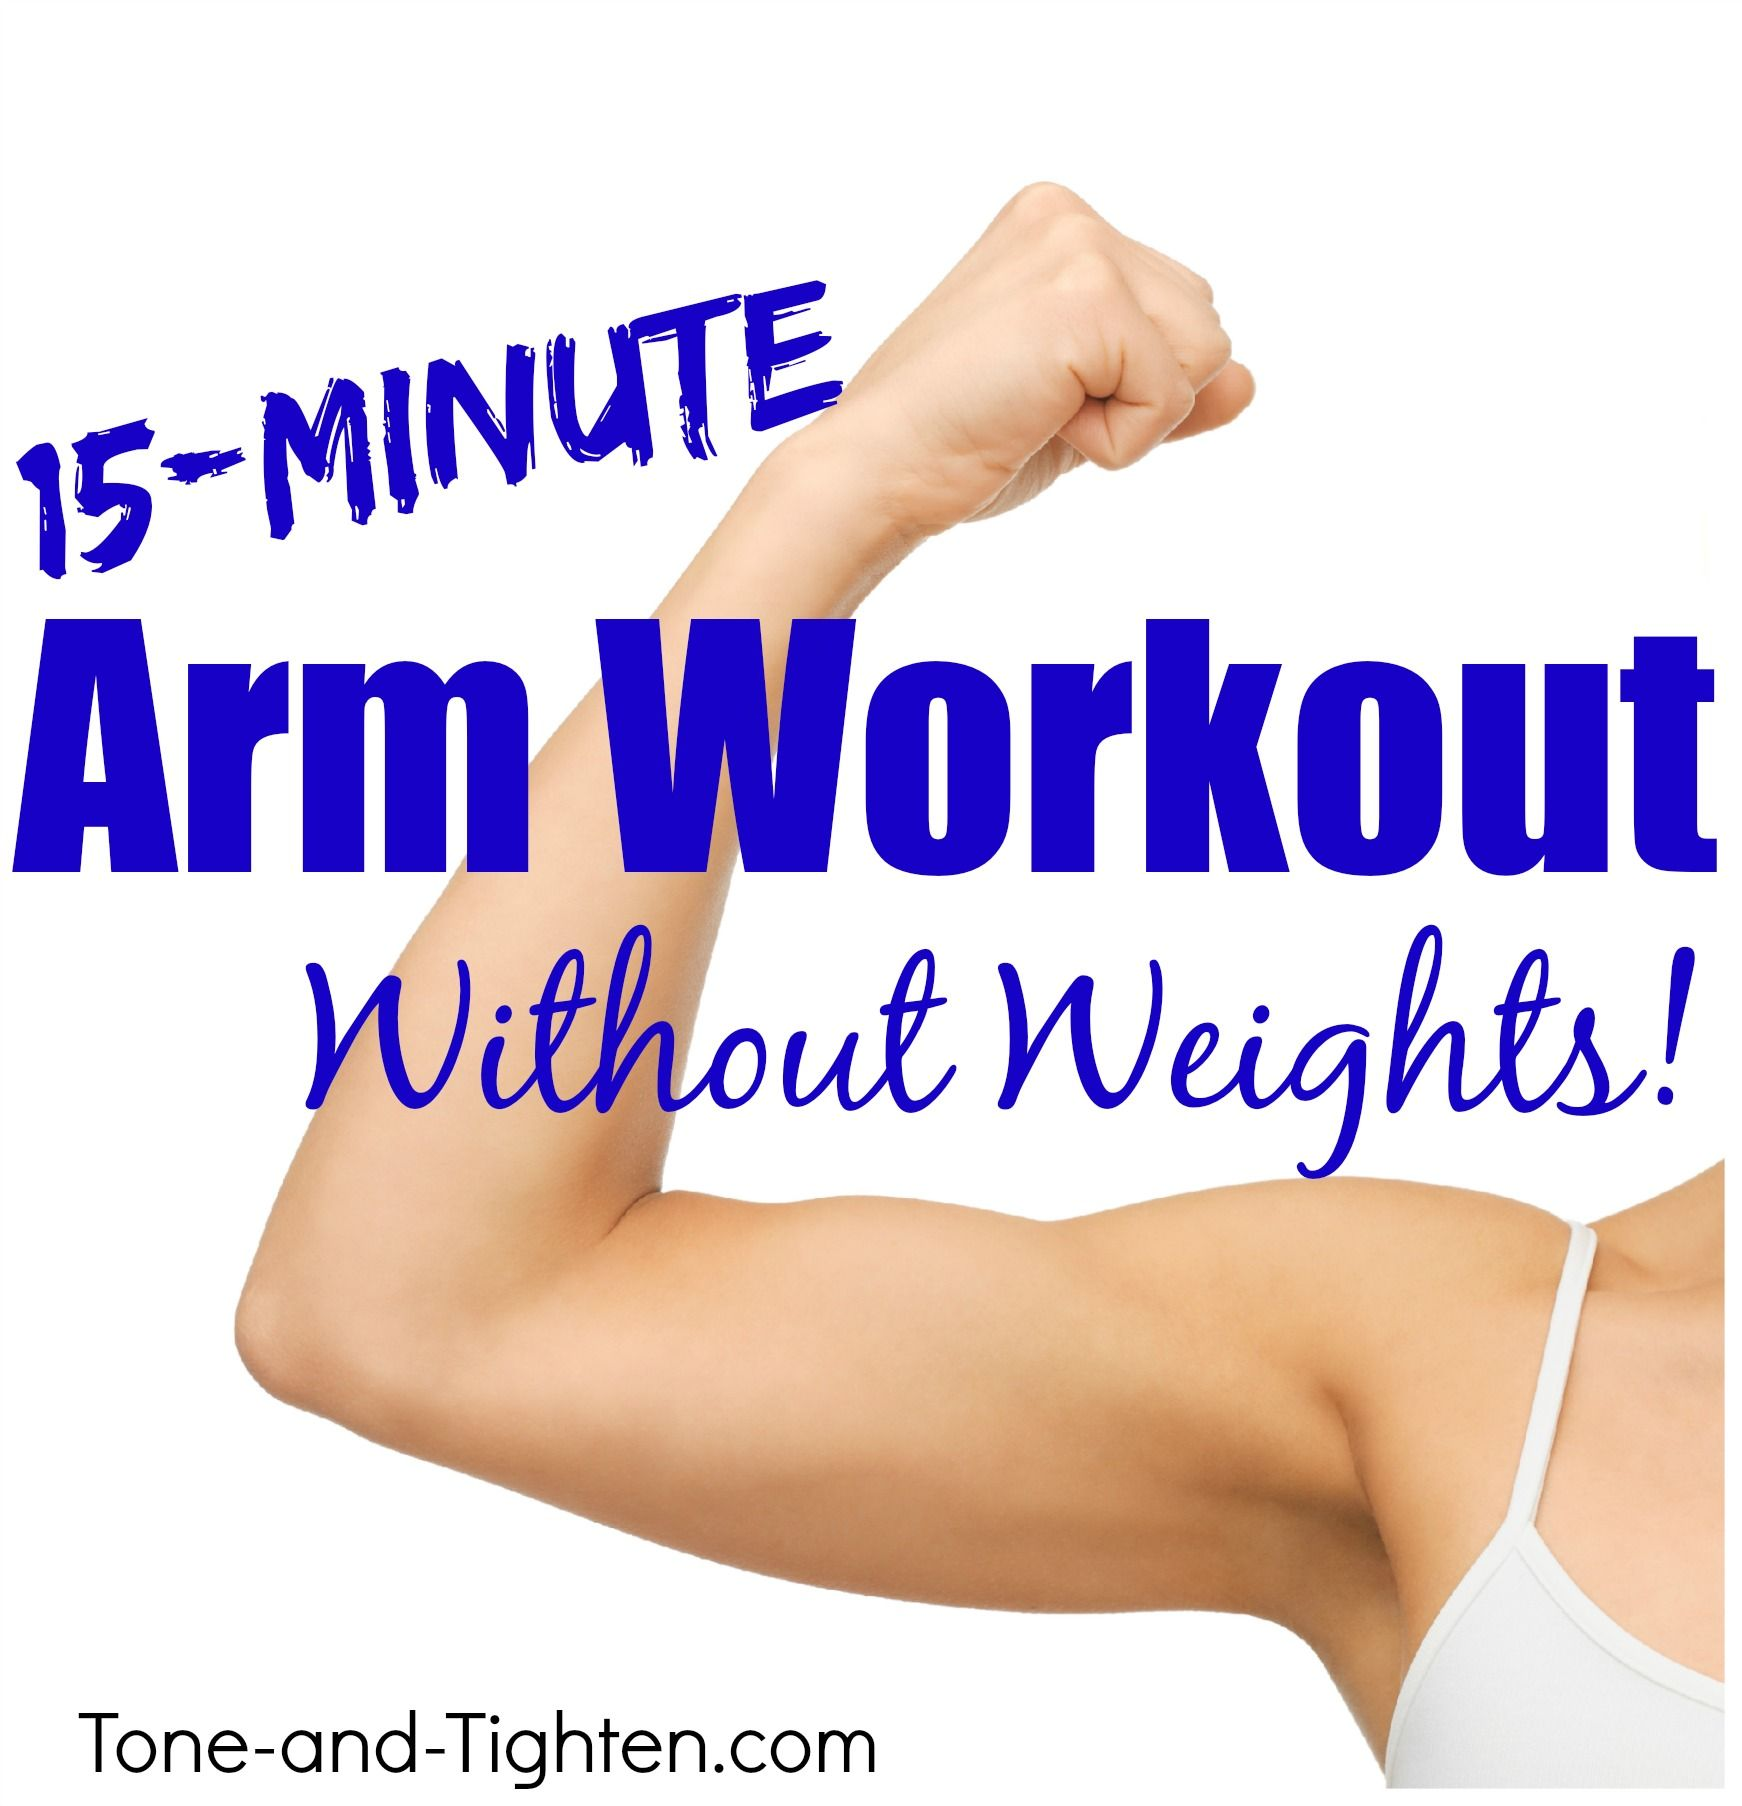 At home arm workout without weights fitspiration